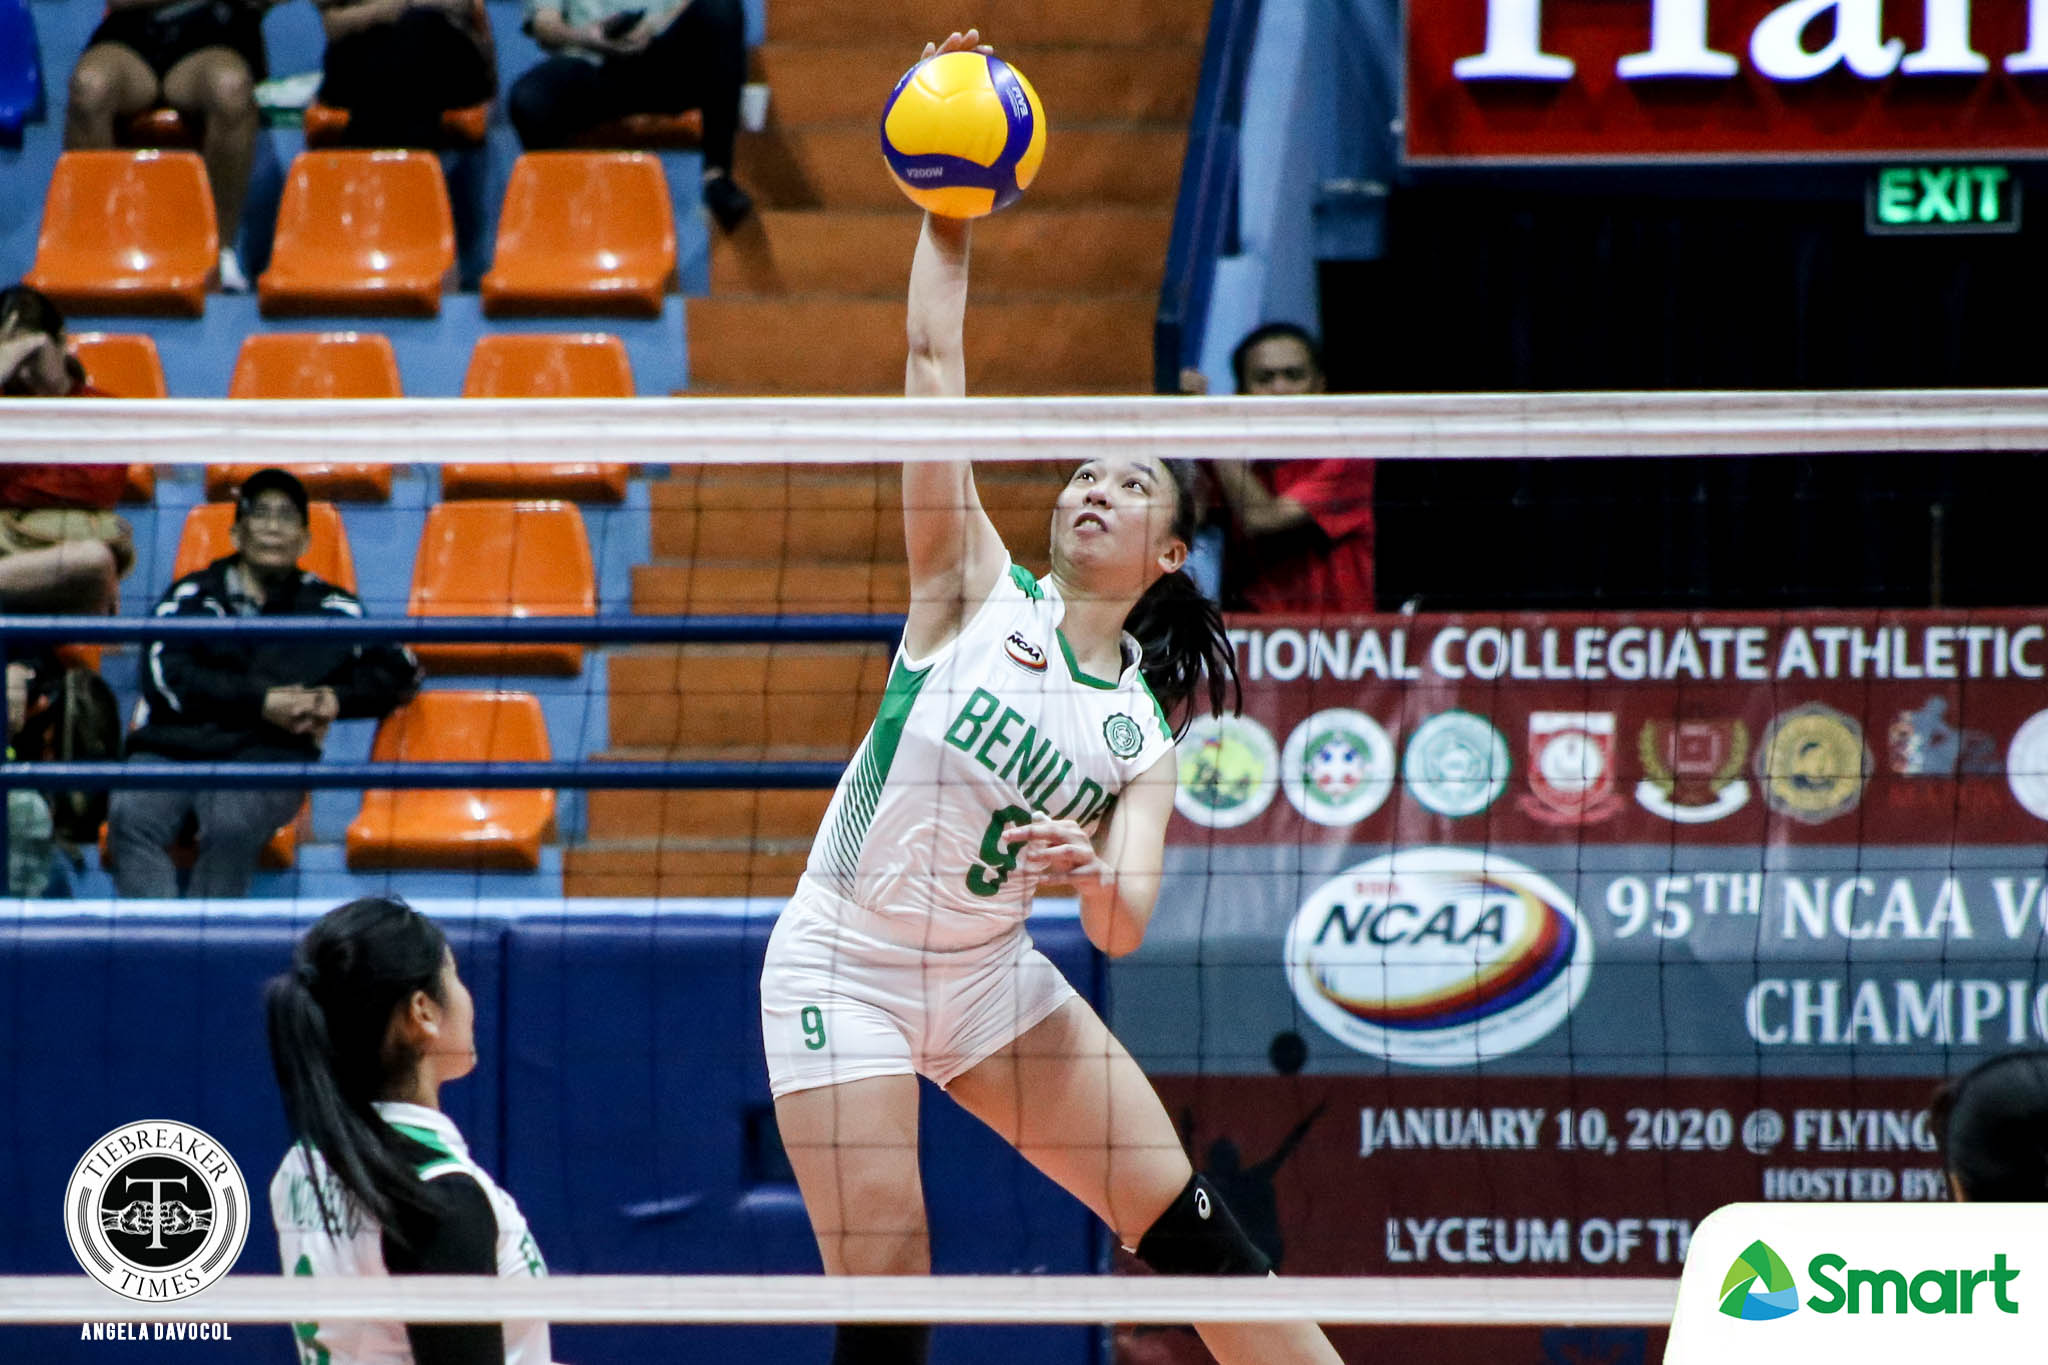 Tiebreaker Times CSB Lady Blazers still see NCAA Season 95 as 'victorious' campaign CSB NCAA News Volleyball  Saint Benilde Women's Volleyball NCAA Season 95 Women's Volleyball NCAA Season 95 Jerry Yee Coronavirus Pandemic